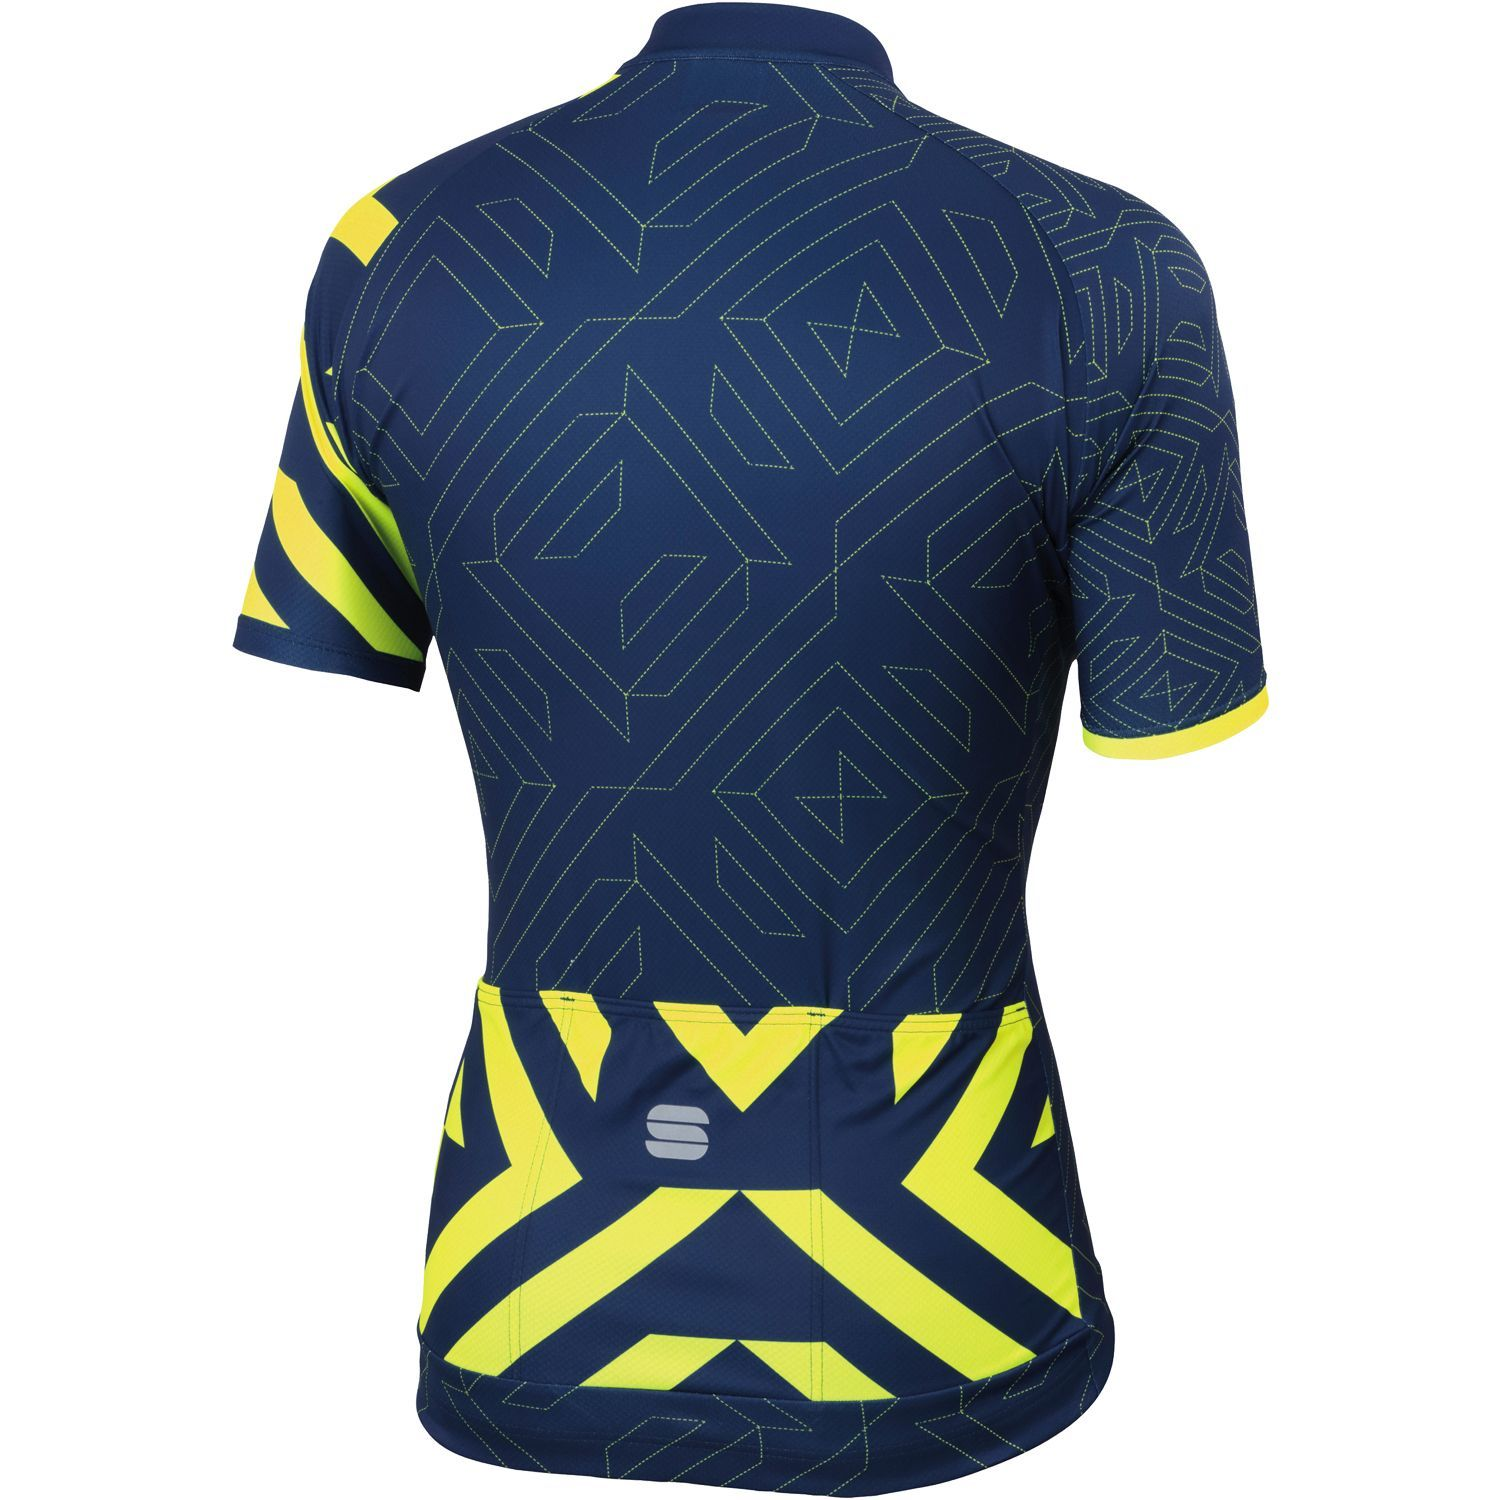 Previous. Sportful PRISM short sleeve cycling jersey blue fluo yellow · Sportful  PRISM short sleeve cycling jersey ... 1084992b2